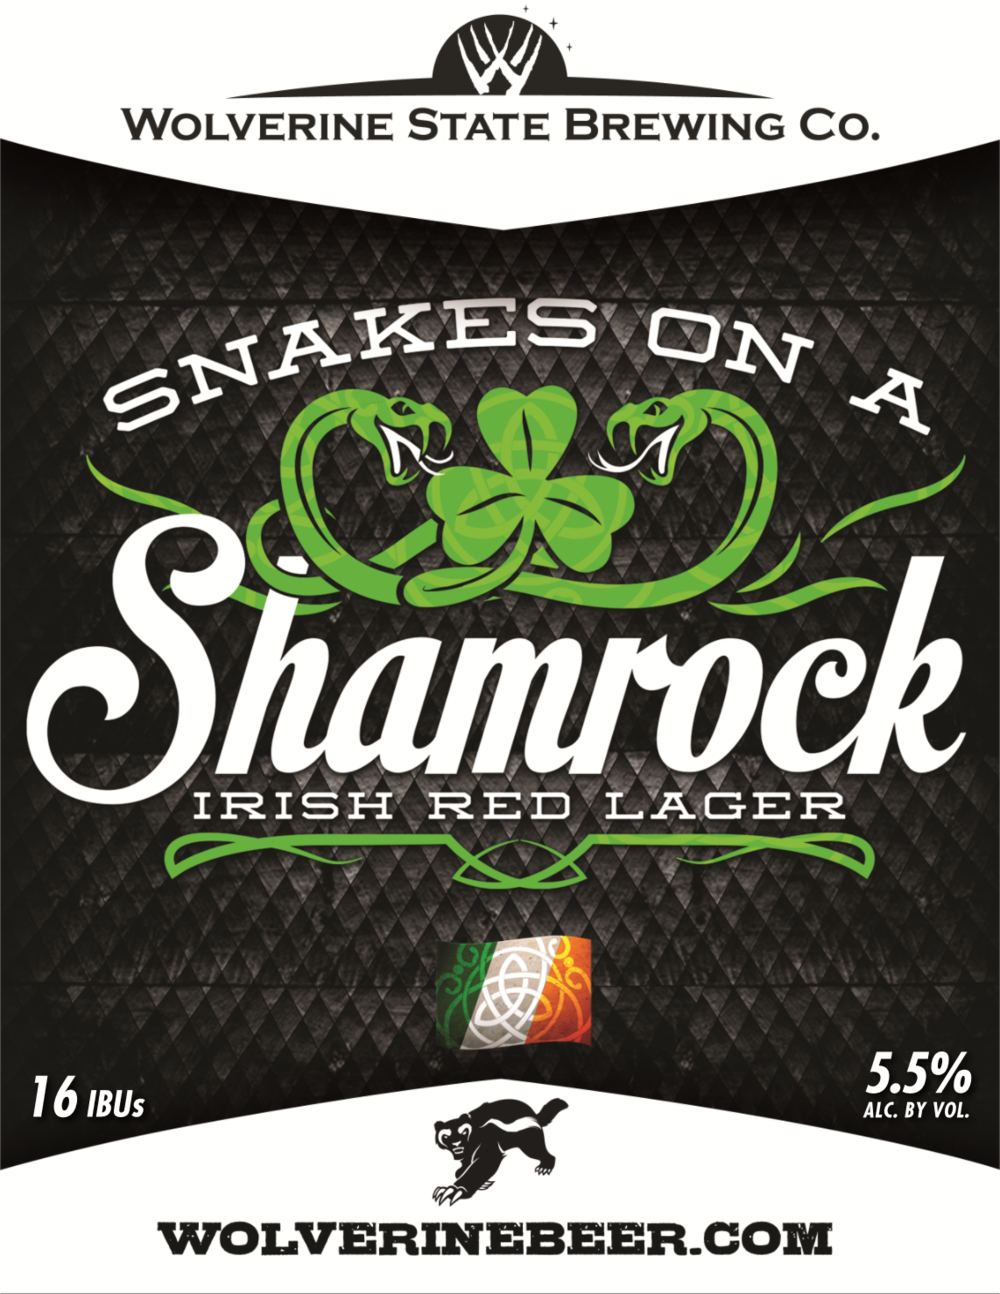 Snakes on a Shamrock Beer Poster